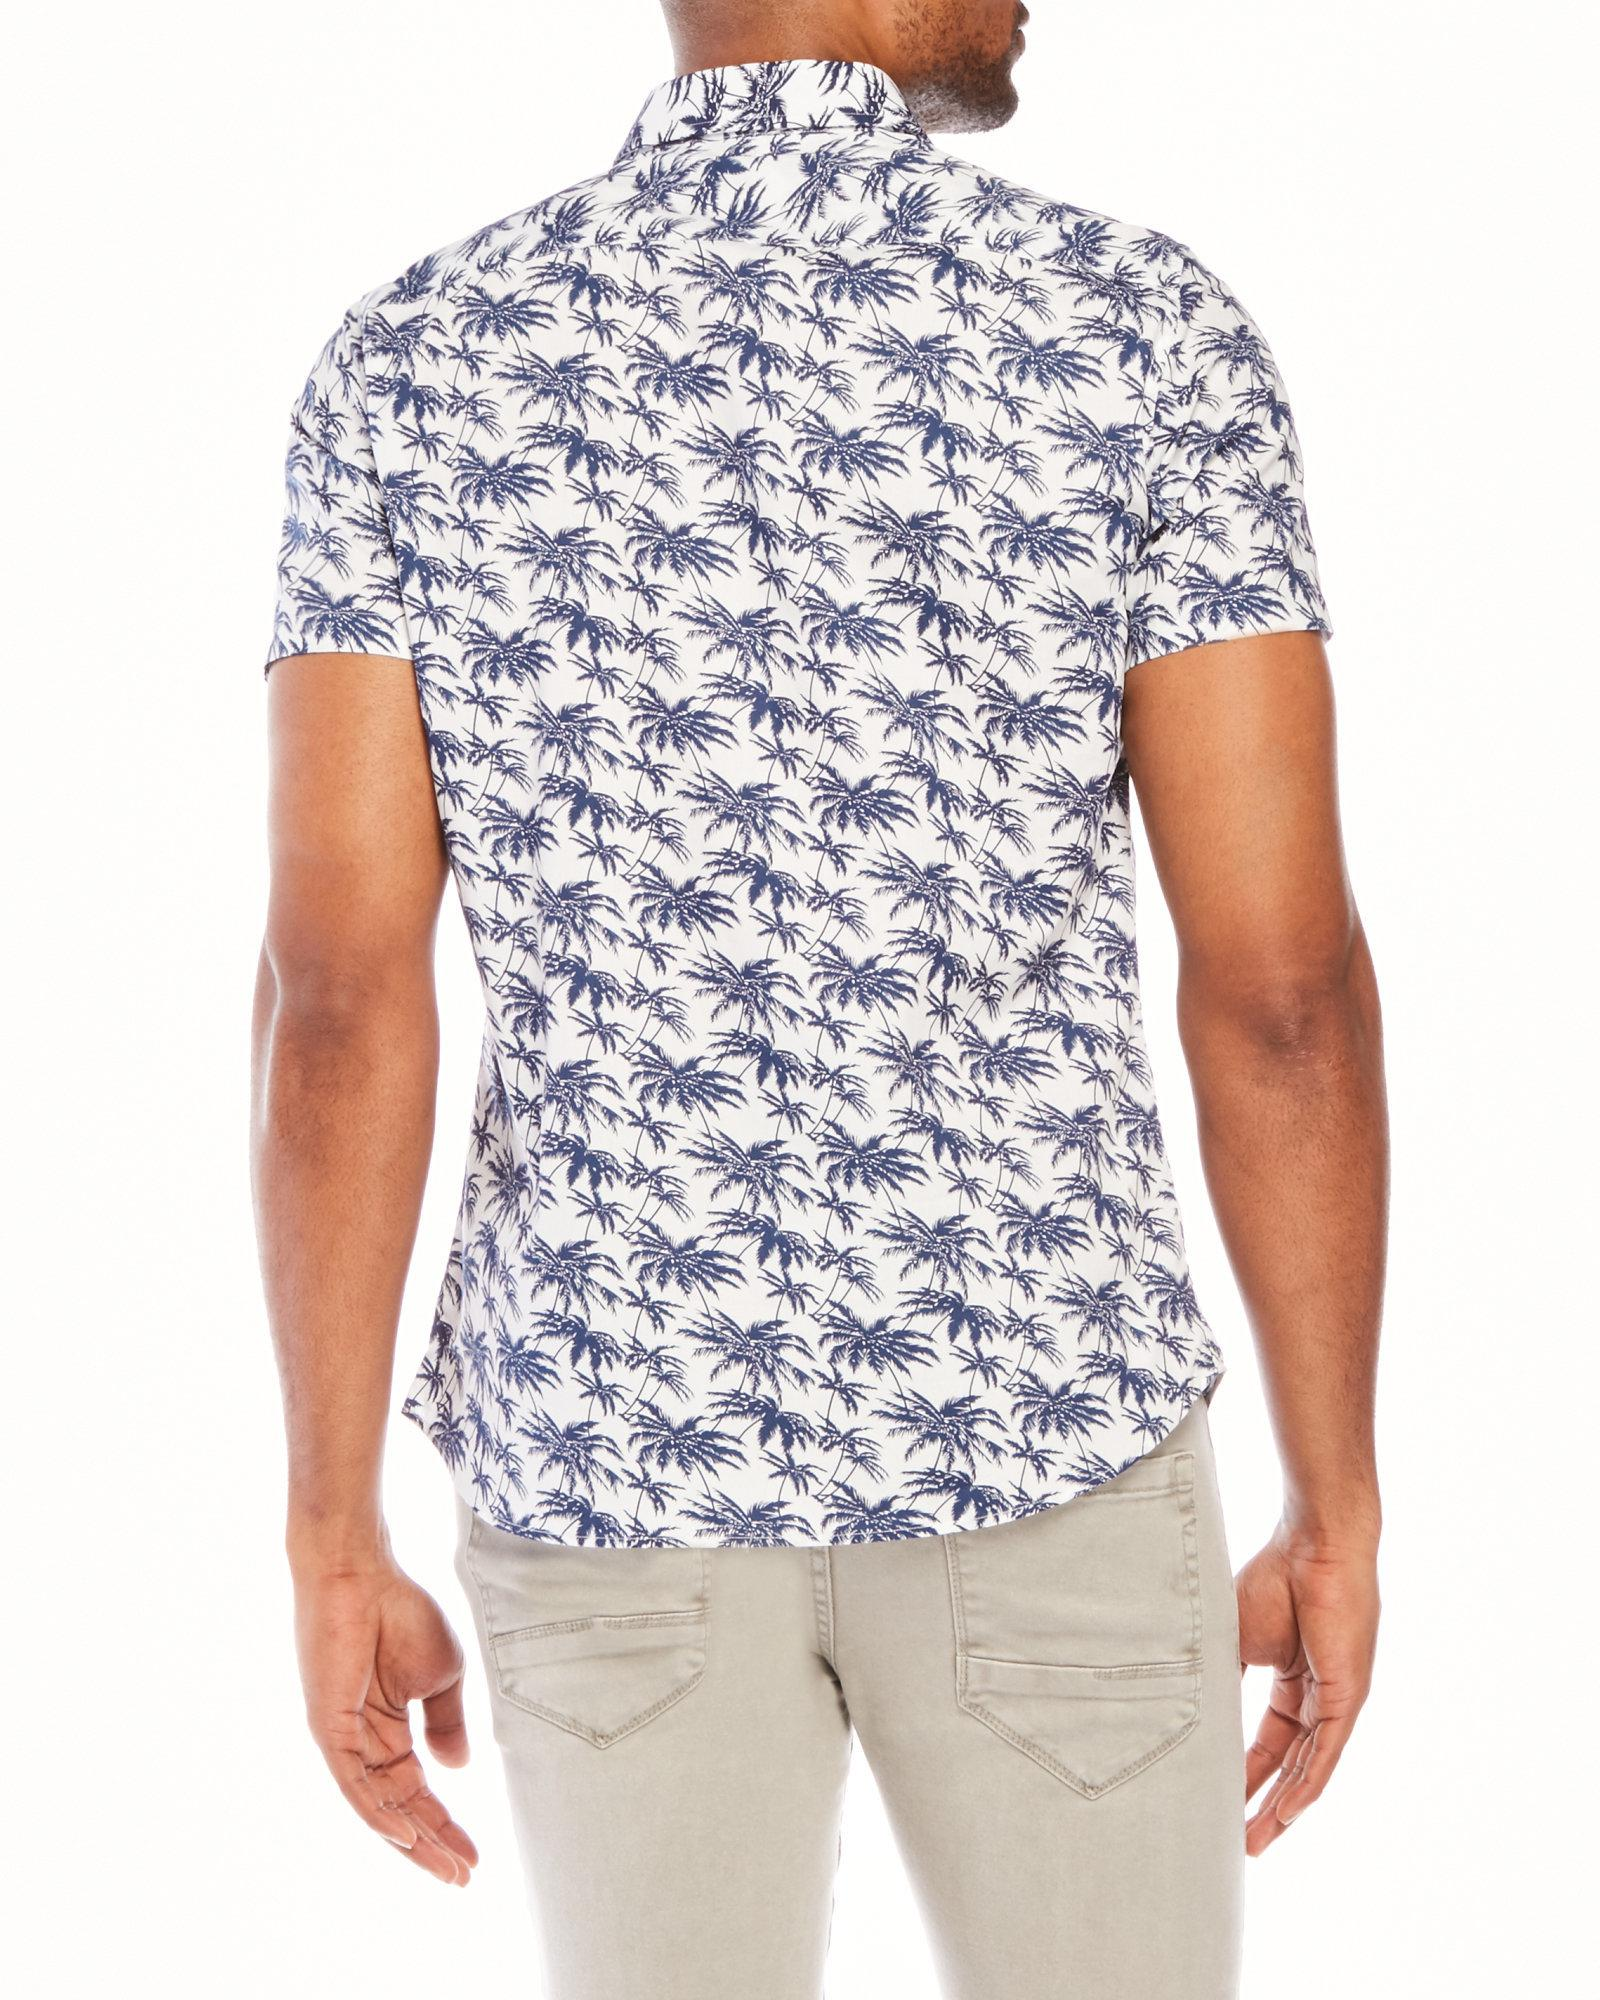 Slate And Stone Clothing : Lyst slate stone bates hawaiian shirt in white for men